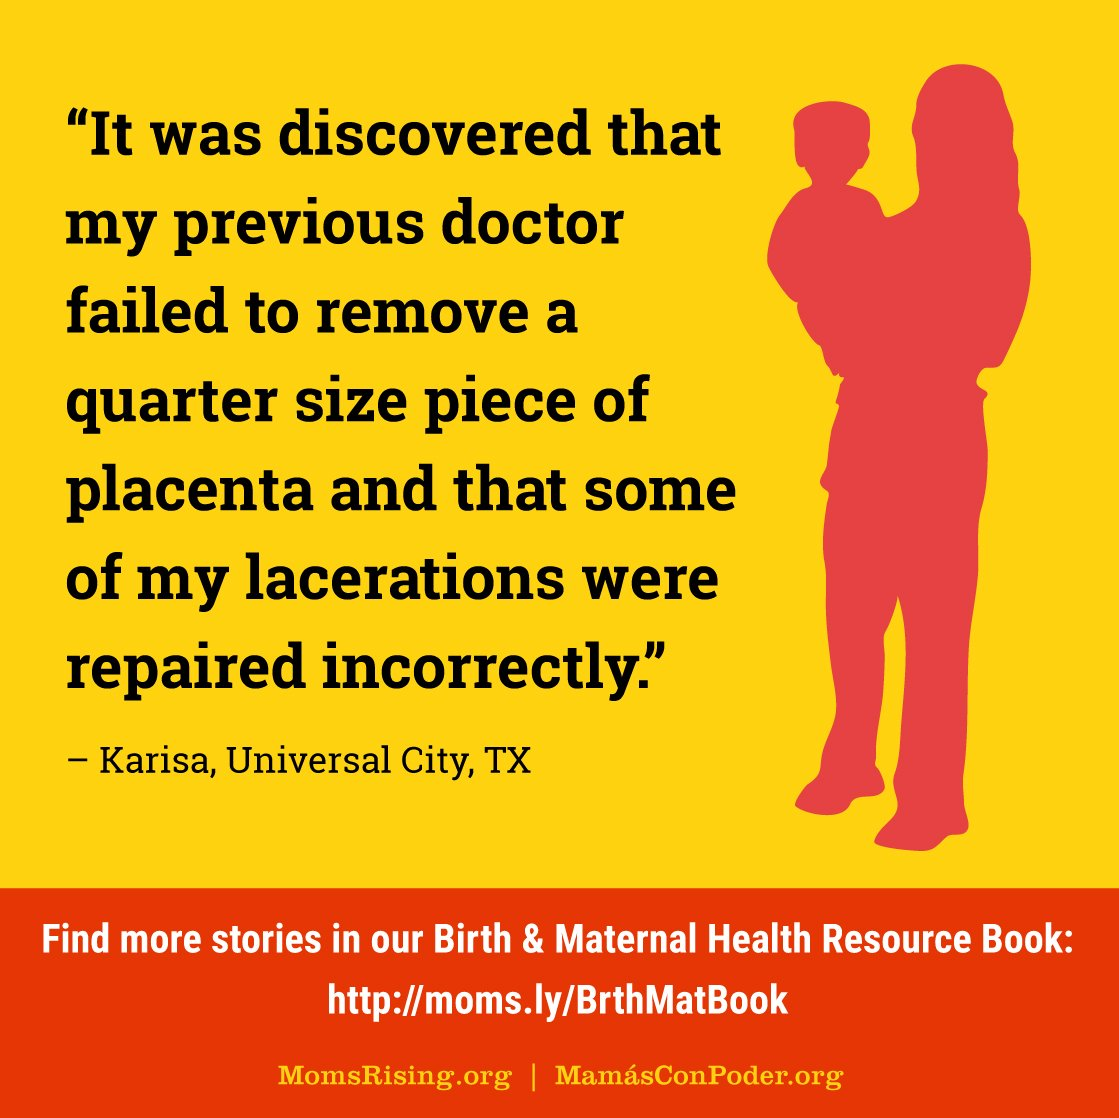 Maternal mortality rates in the U.S. have more than doubled in just the past ten years. We are excited to launch our BRAND NEW Birth & Maternal Health Resource Book, check it out to learn the facts and fight for ! #MaternalJusticehttps://t.co/2iZlozJvEt